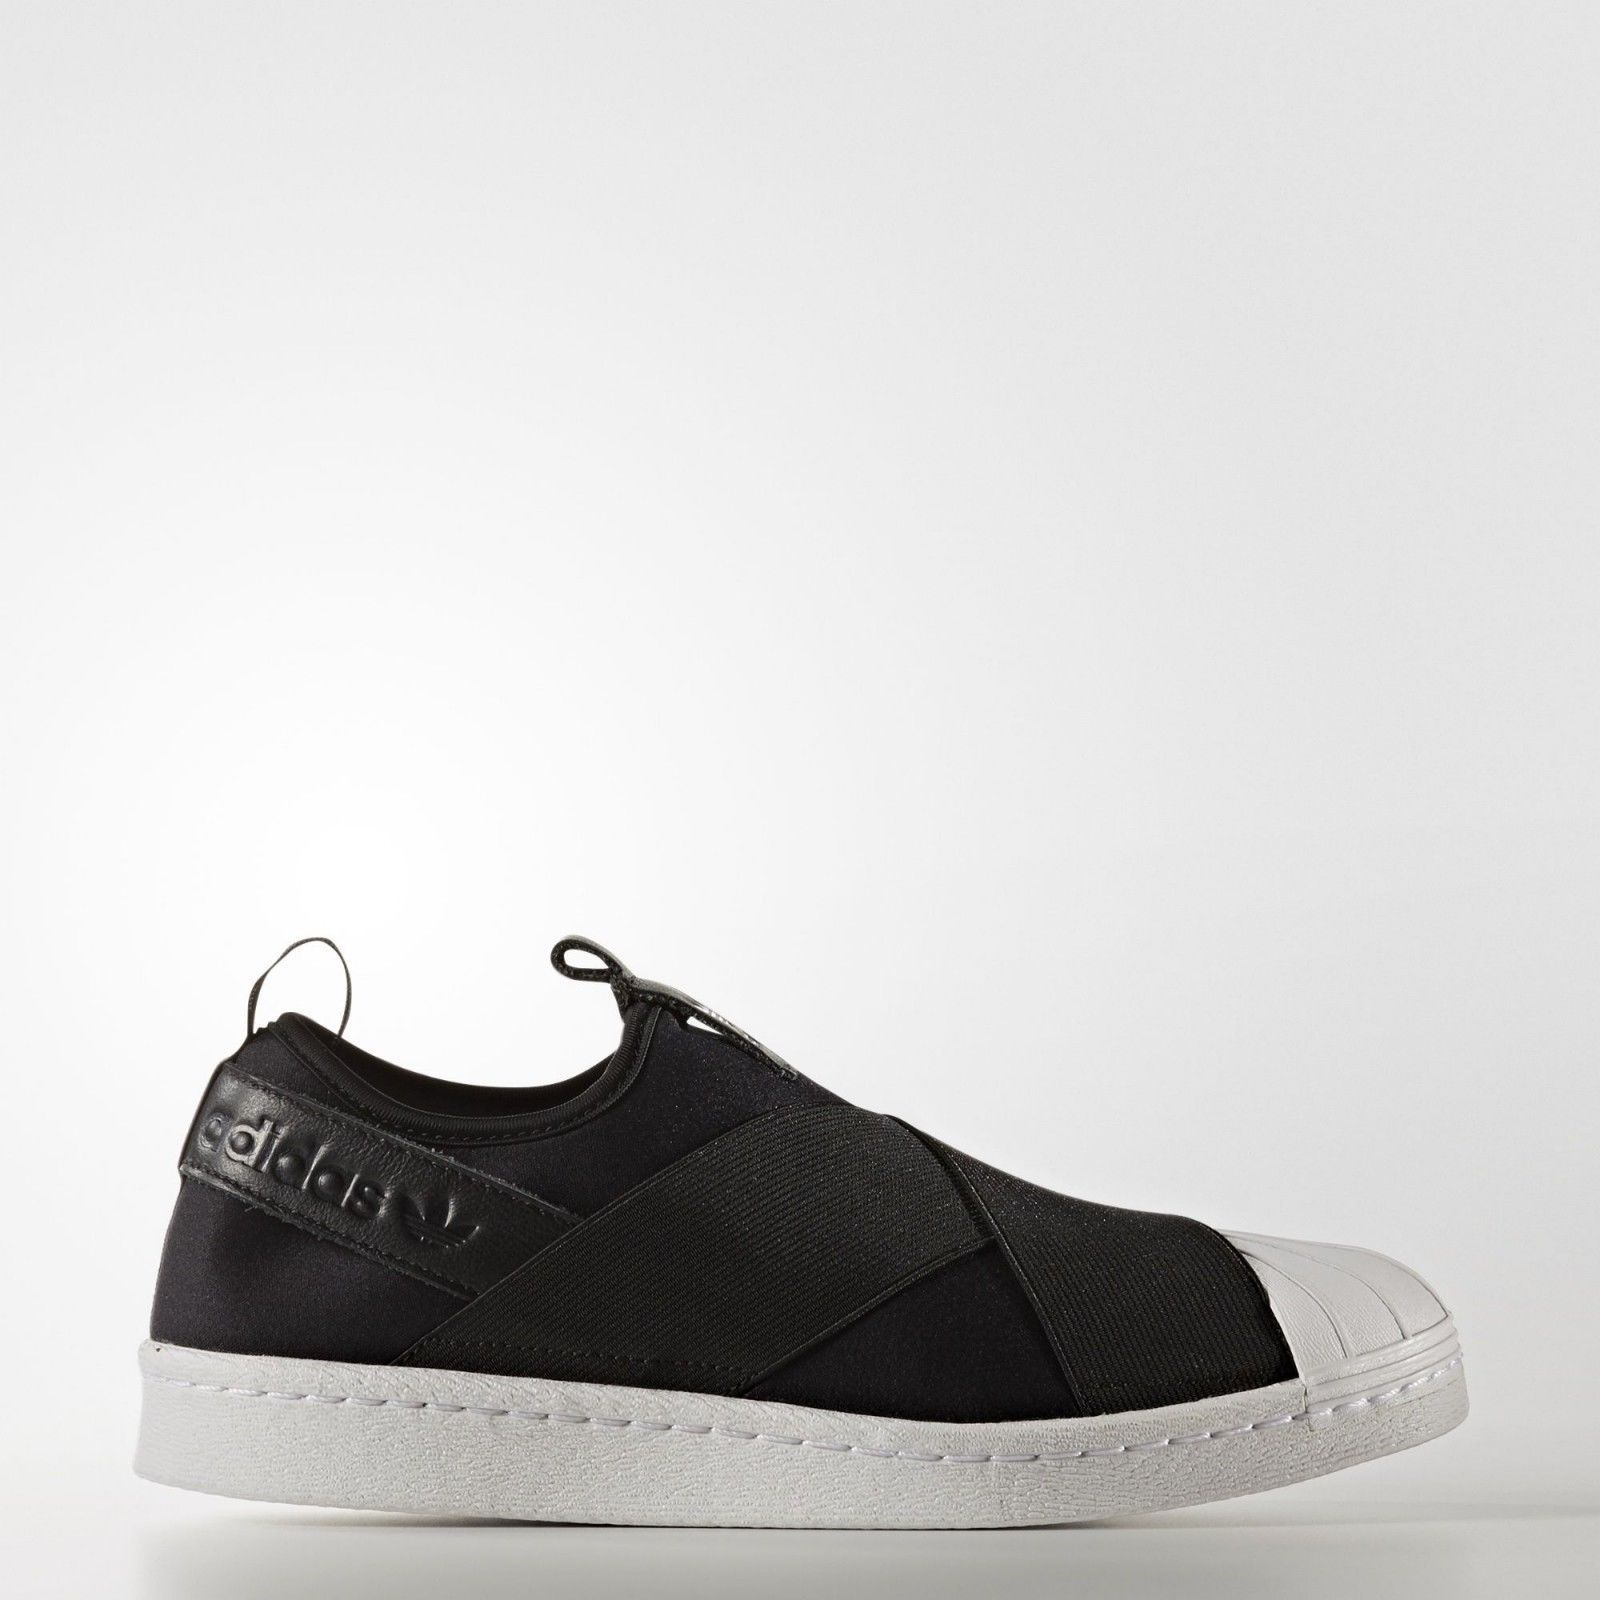 974f5f85a539cd 79.00 ❤ ADIDAS ORIGINALS SUPERSTAR SLIP ON ATHLETIC CASUAL COMFORT SHOES  BLACK S81337 ❤  adidas  originals  superstar  athletic  casual  comfort   s81337 ...